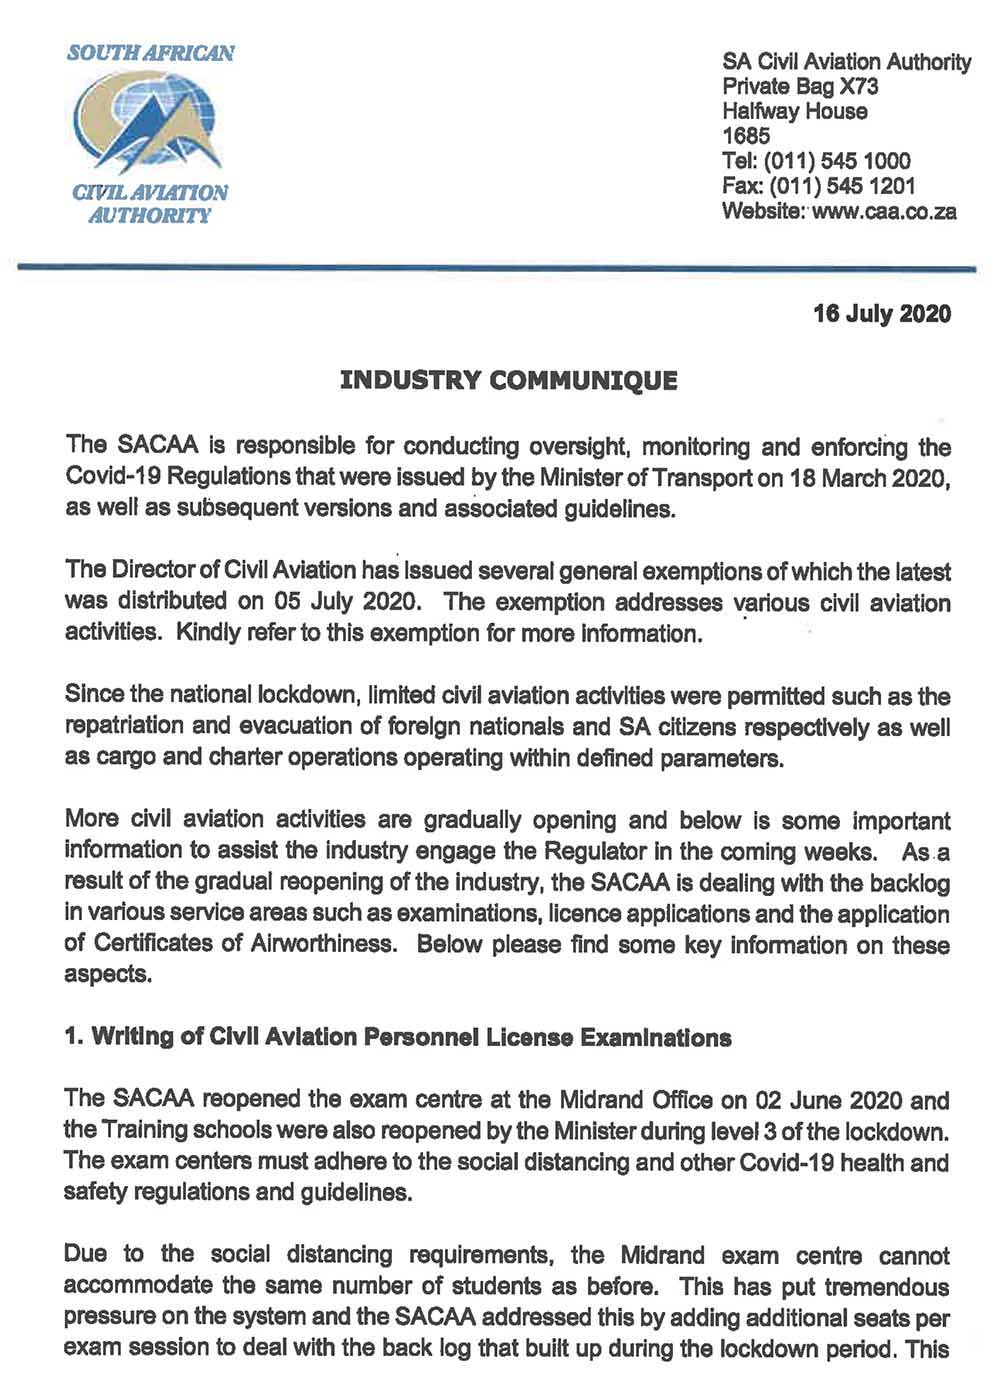 SACAA Industry communique 16 July 2020 1